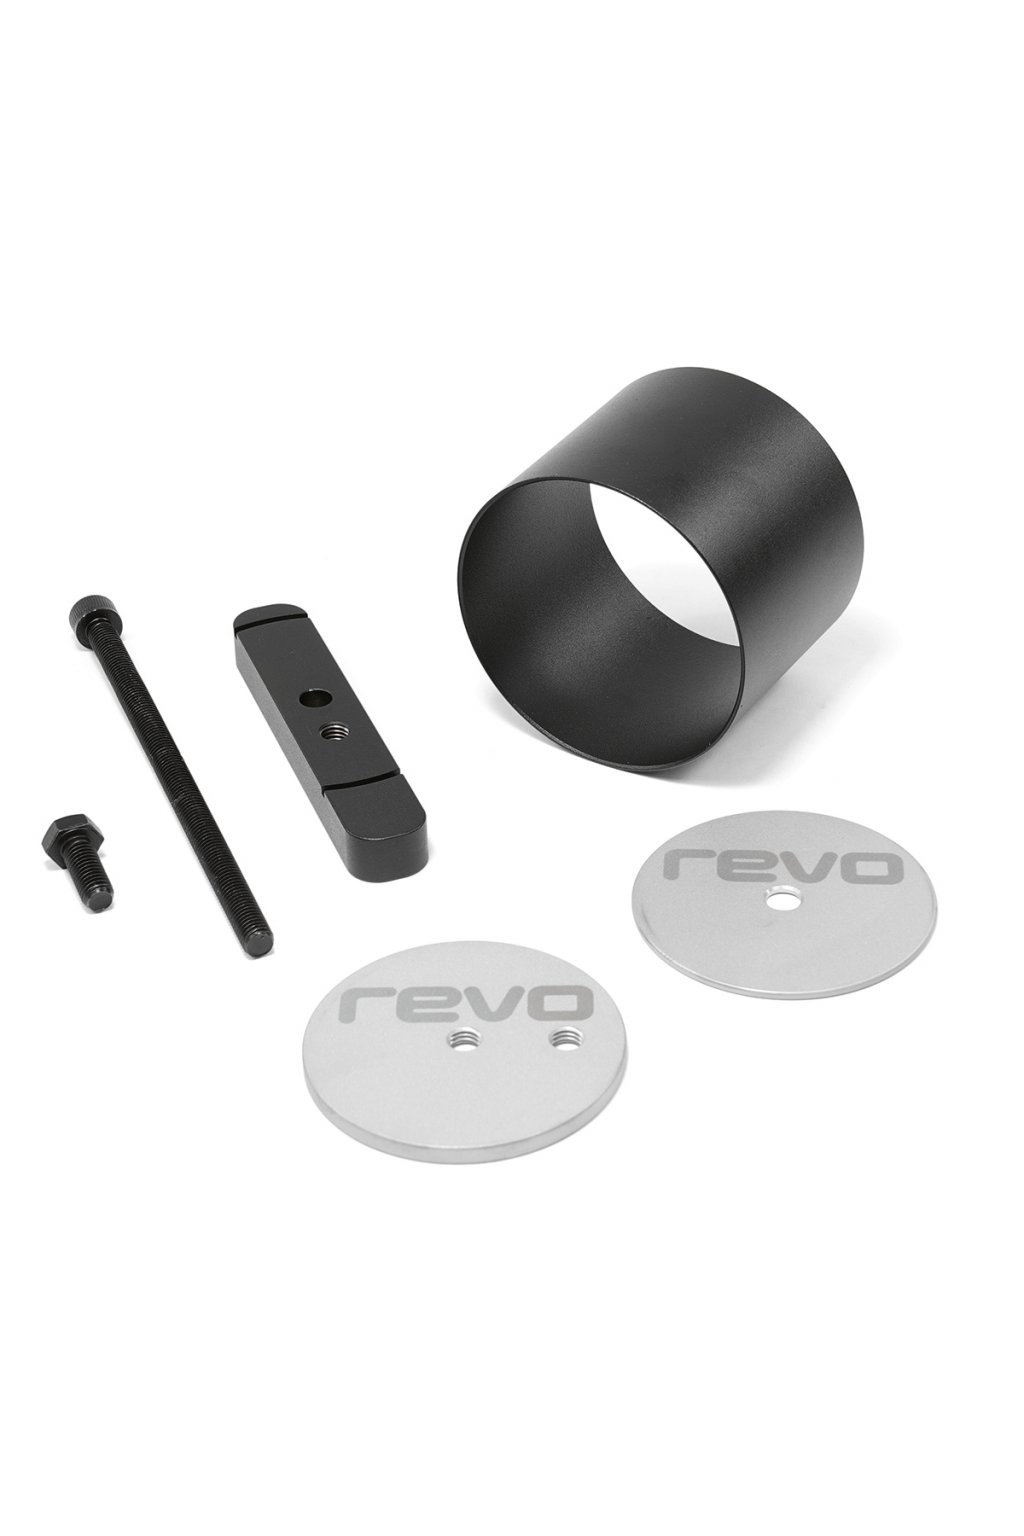 Revo MQB Torque Mount Replacement Tool Kit